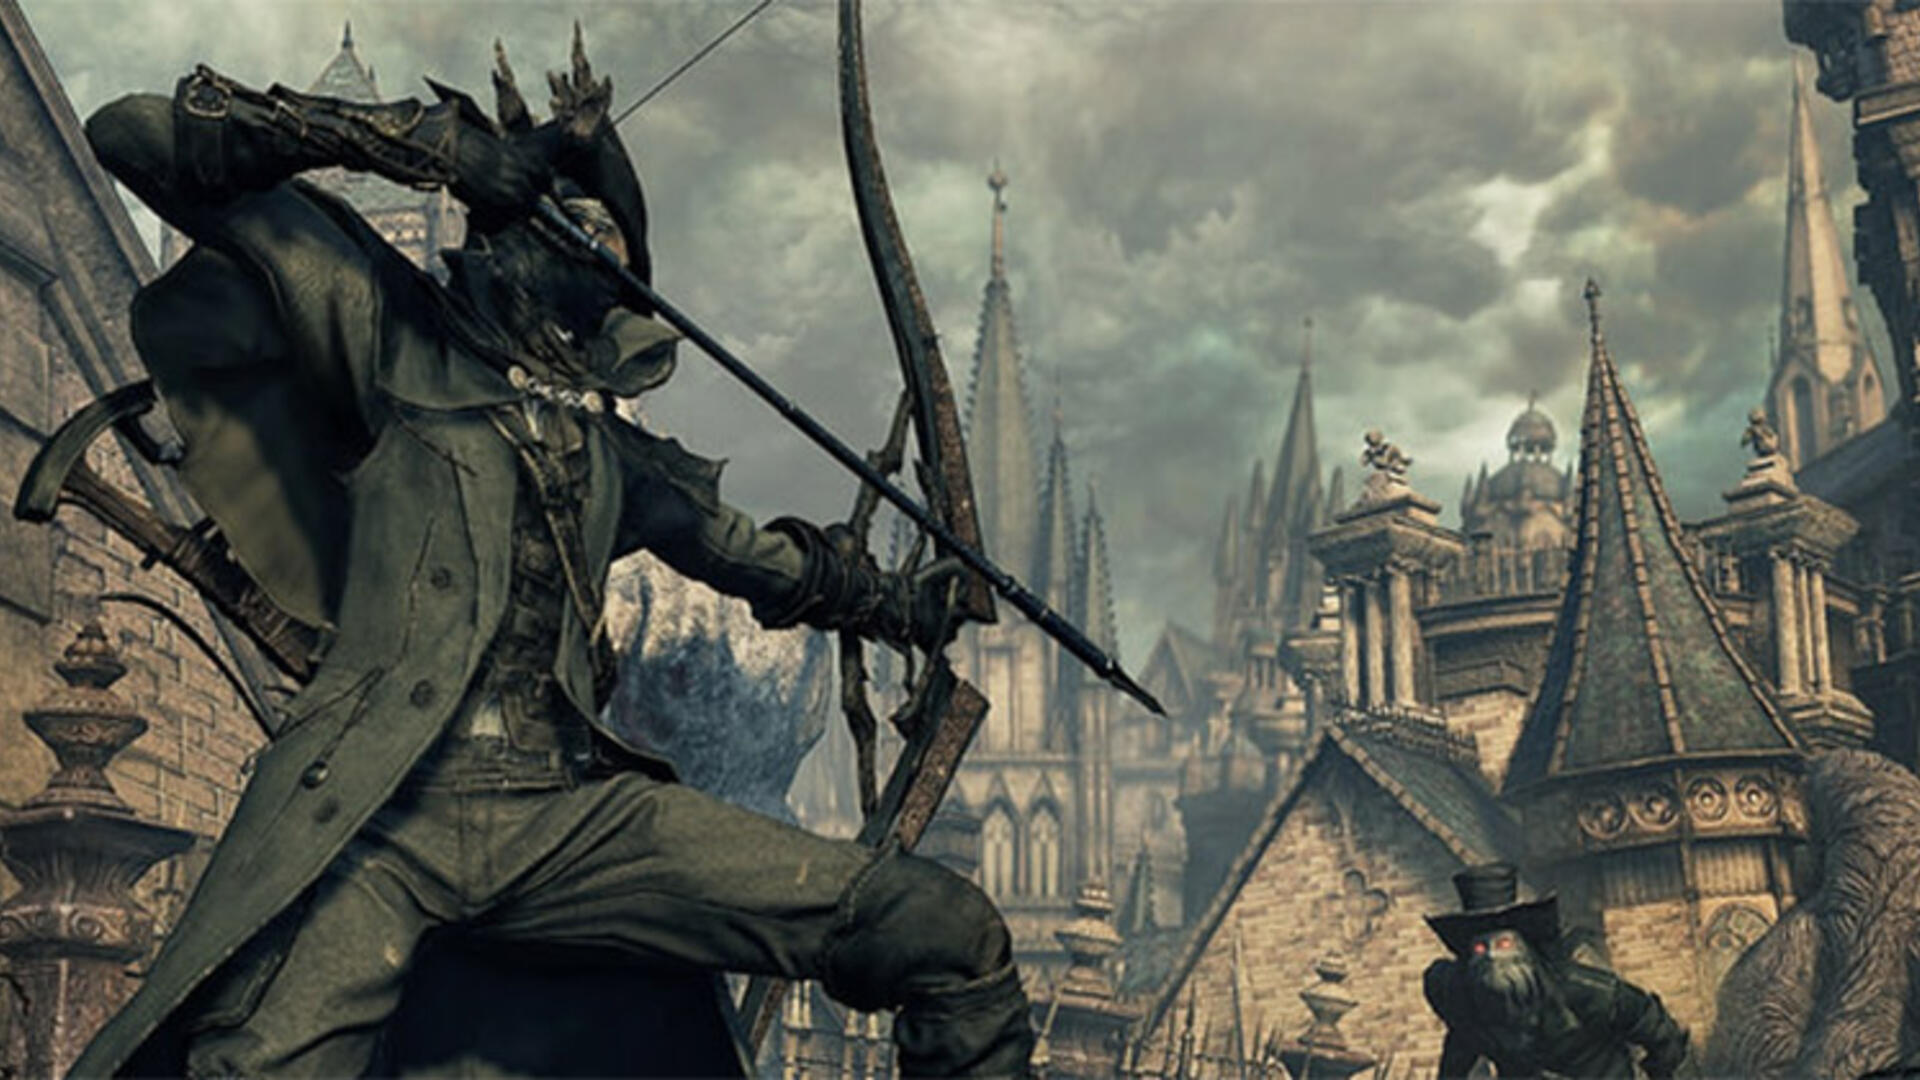 Bloodborne Players Plan a Return to Yharnam as Game Goes Free on PS Plus